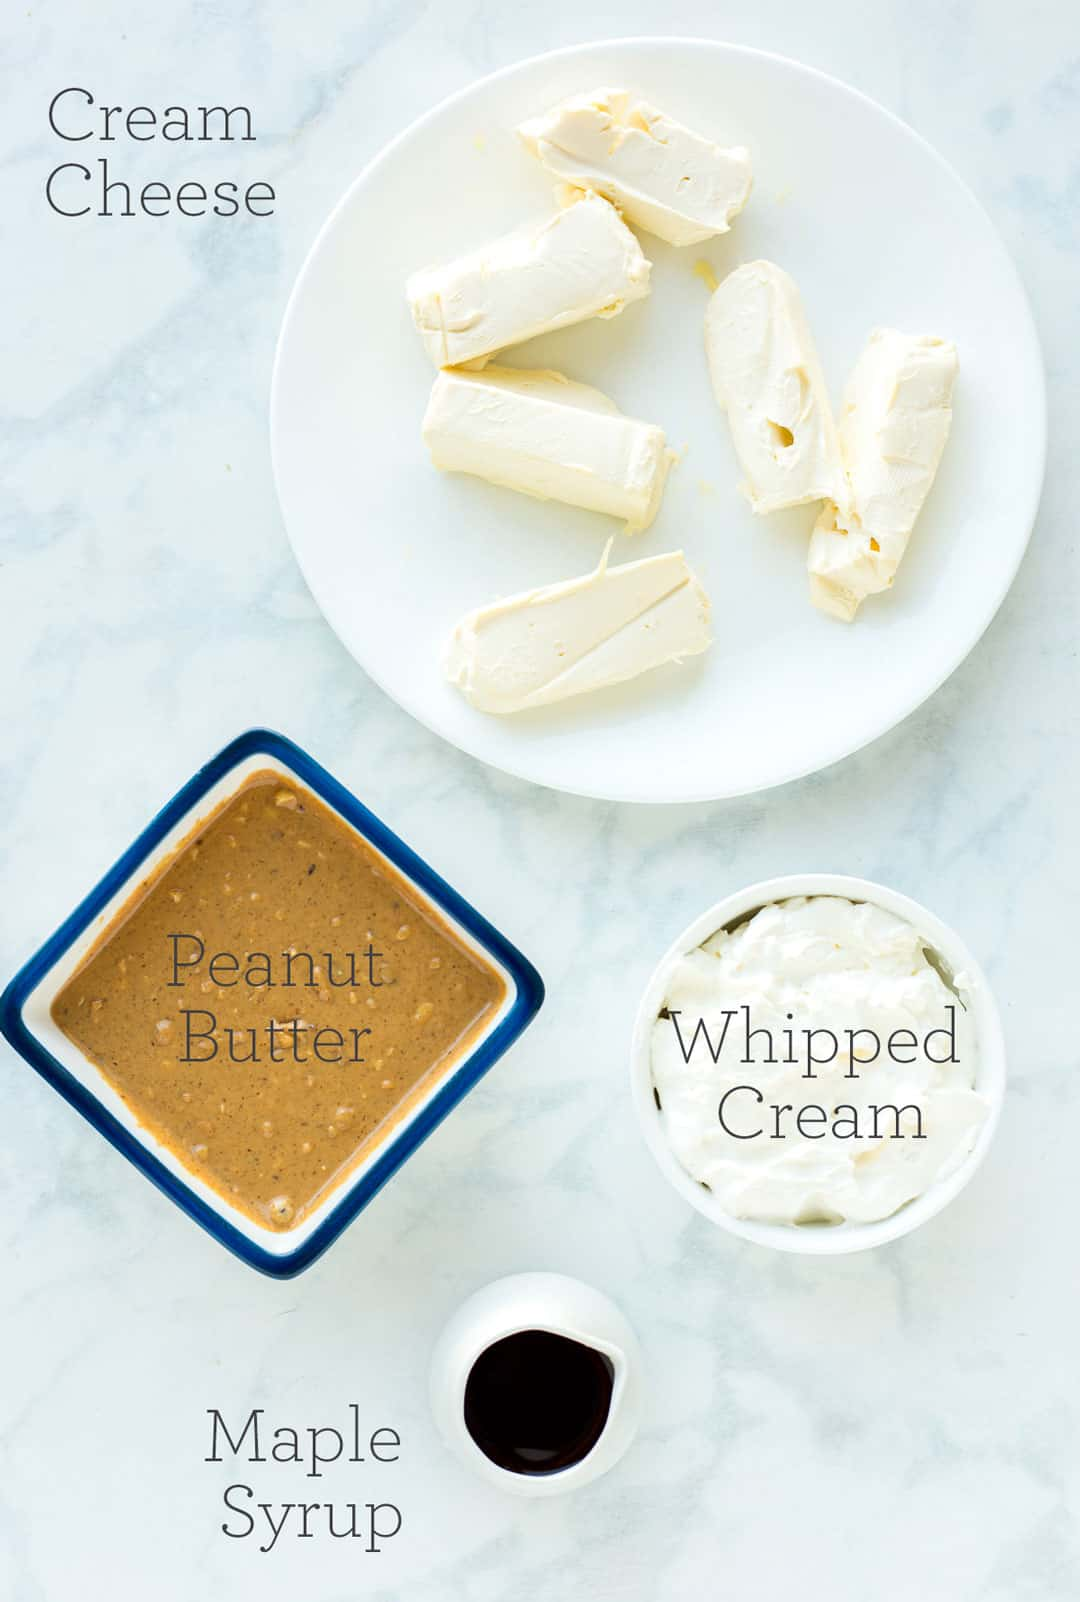 Ingredients to make Peanut Butter Dip with text overlay on each item